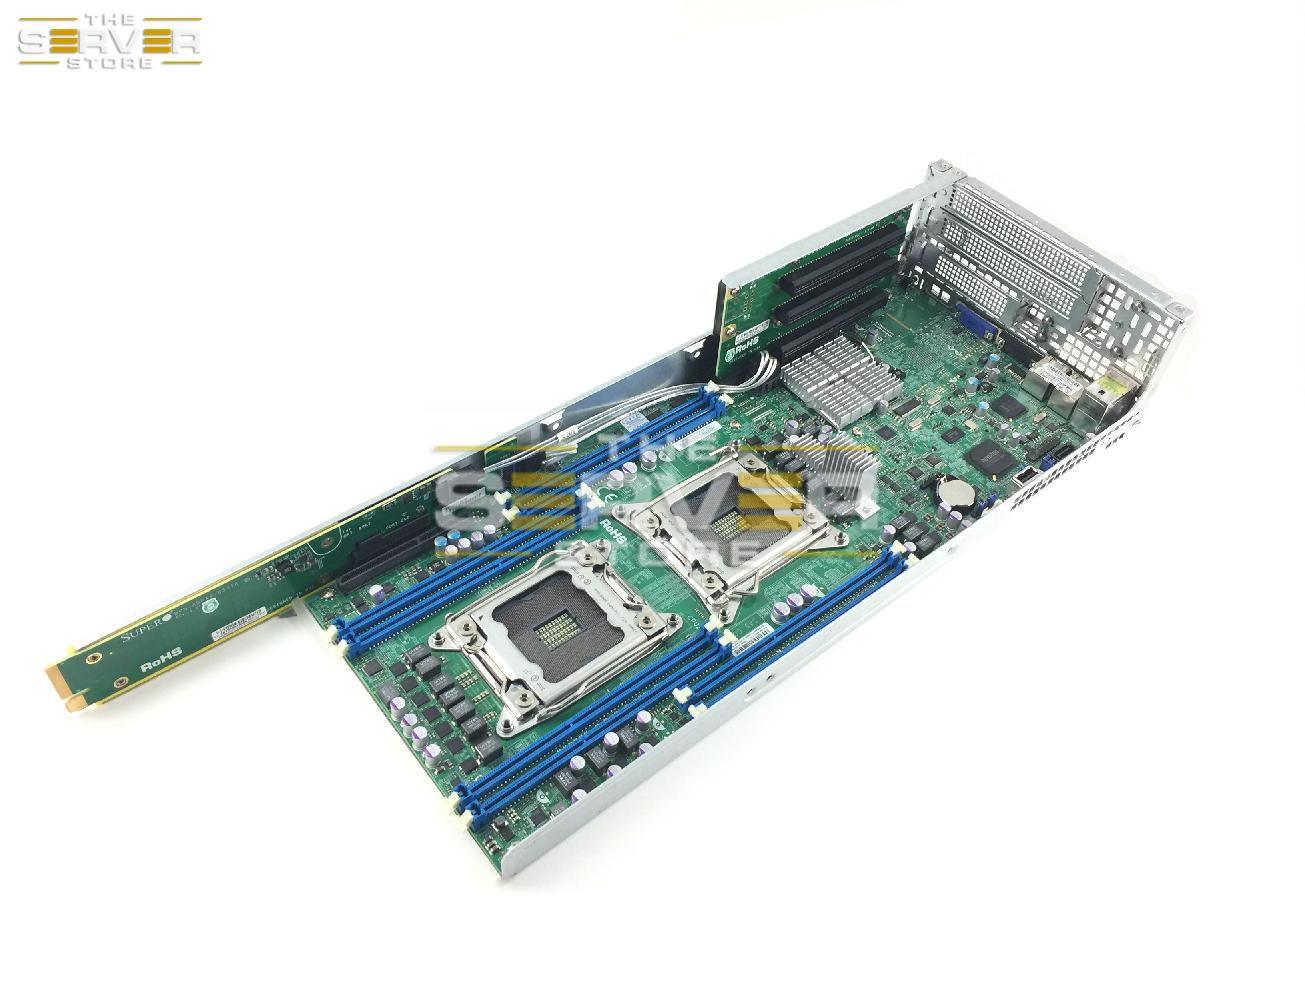 Supermicro X9DRT-HF Dual LGA 2011 Server Node System Board